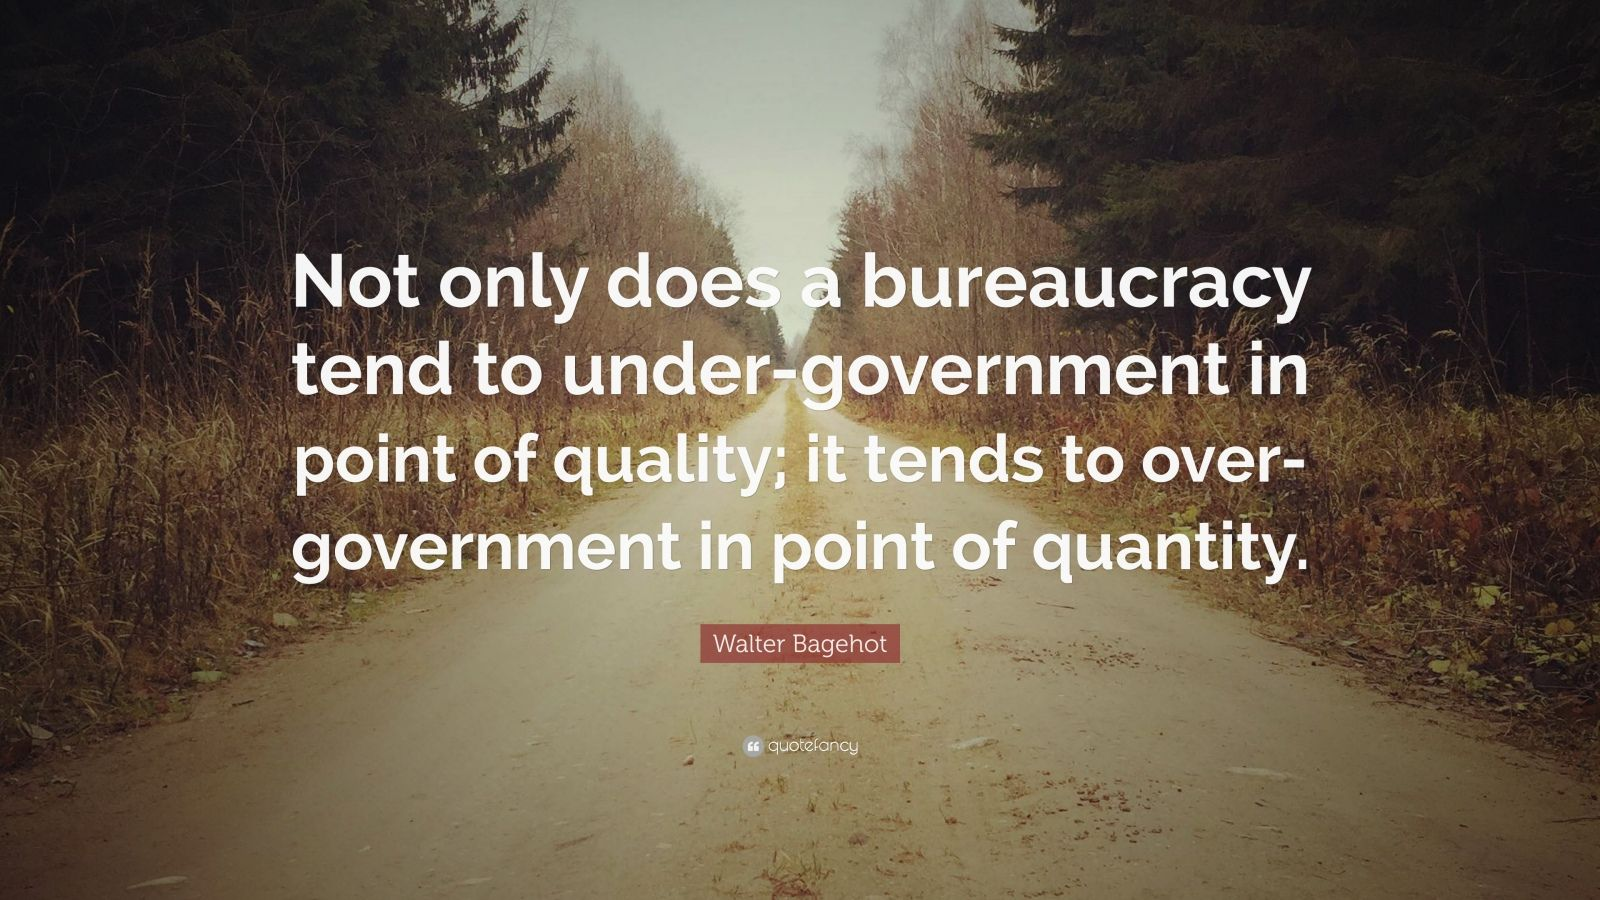 """Walter Bagehot Quote: """"Not only does a bureaucracy tend to under-government in point of quality; it tends to over-government in point of quantity."""""""